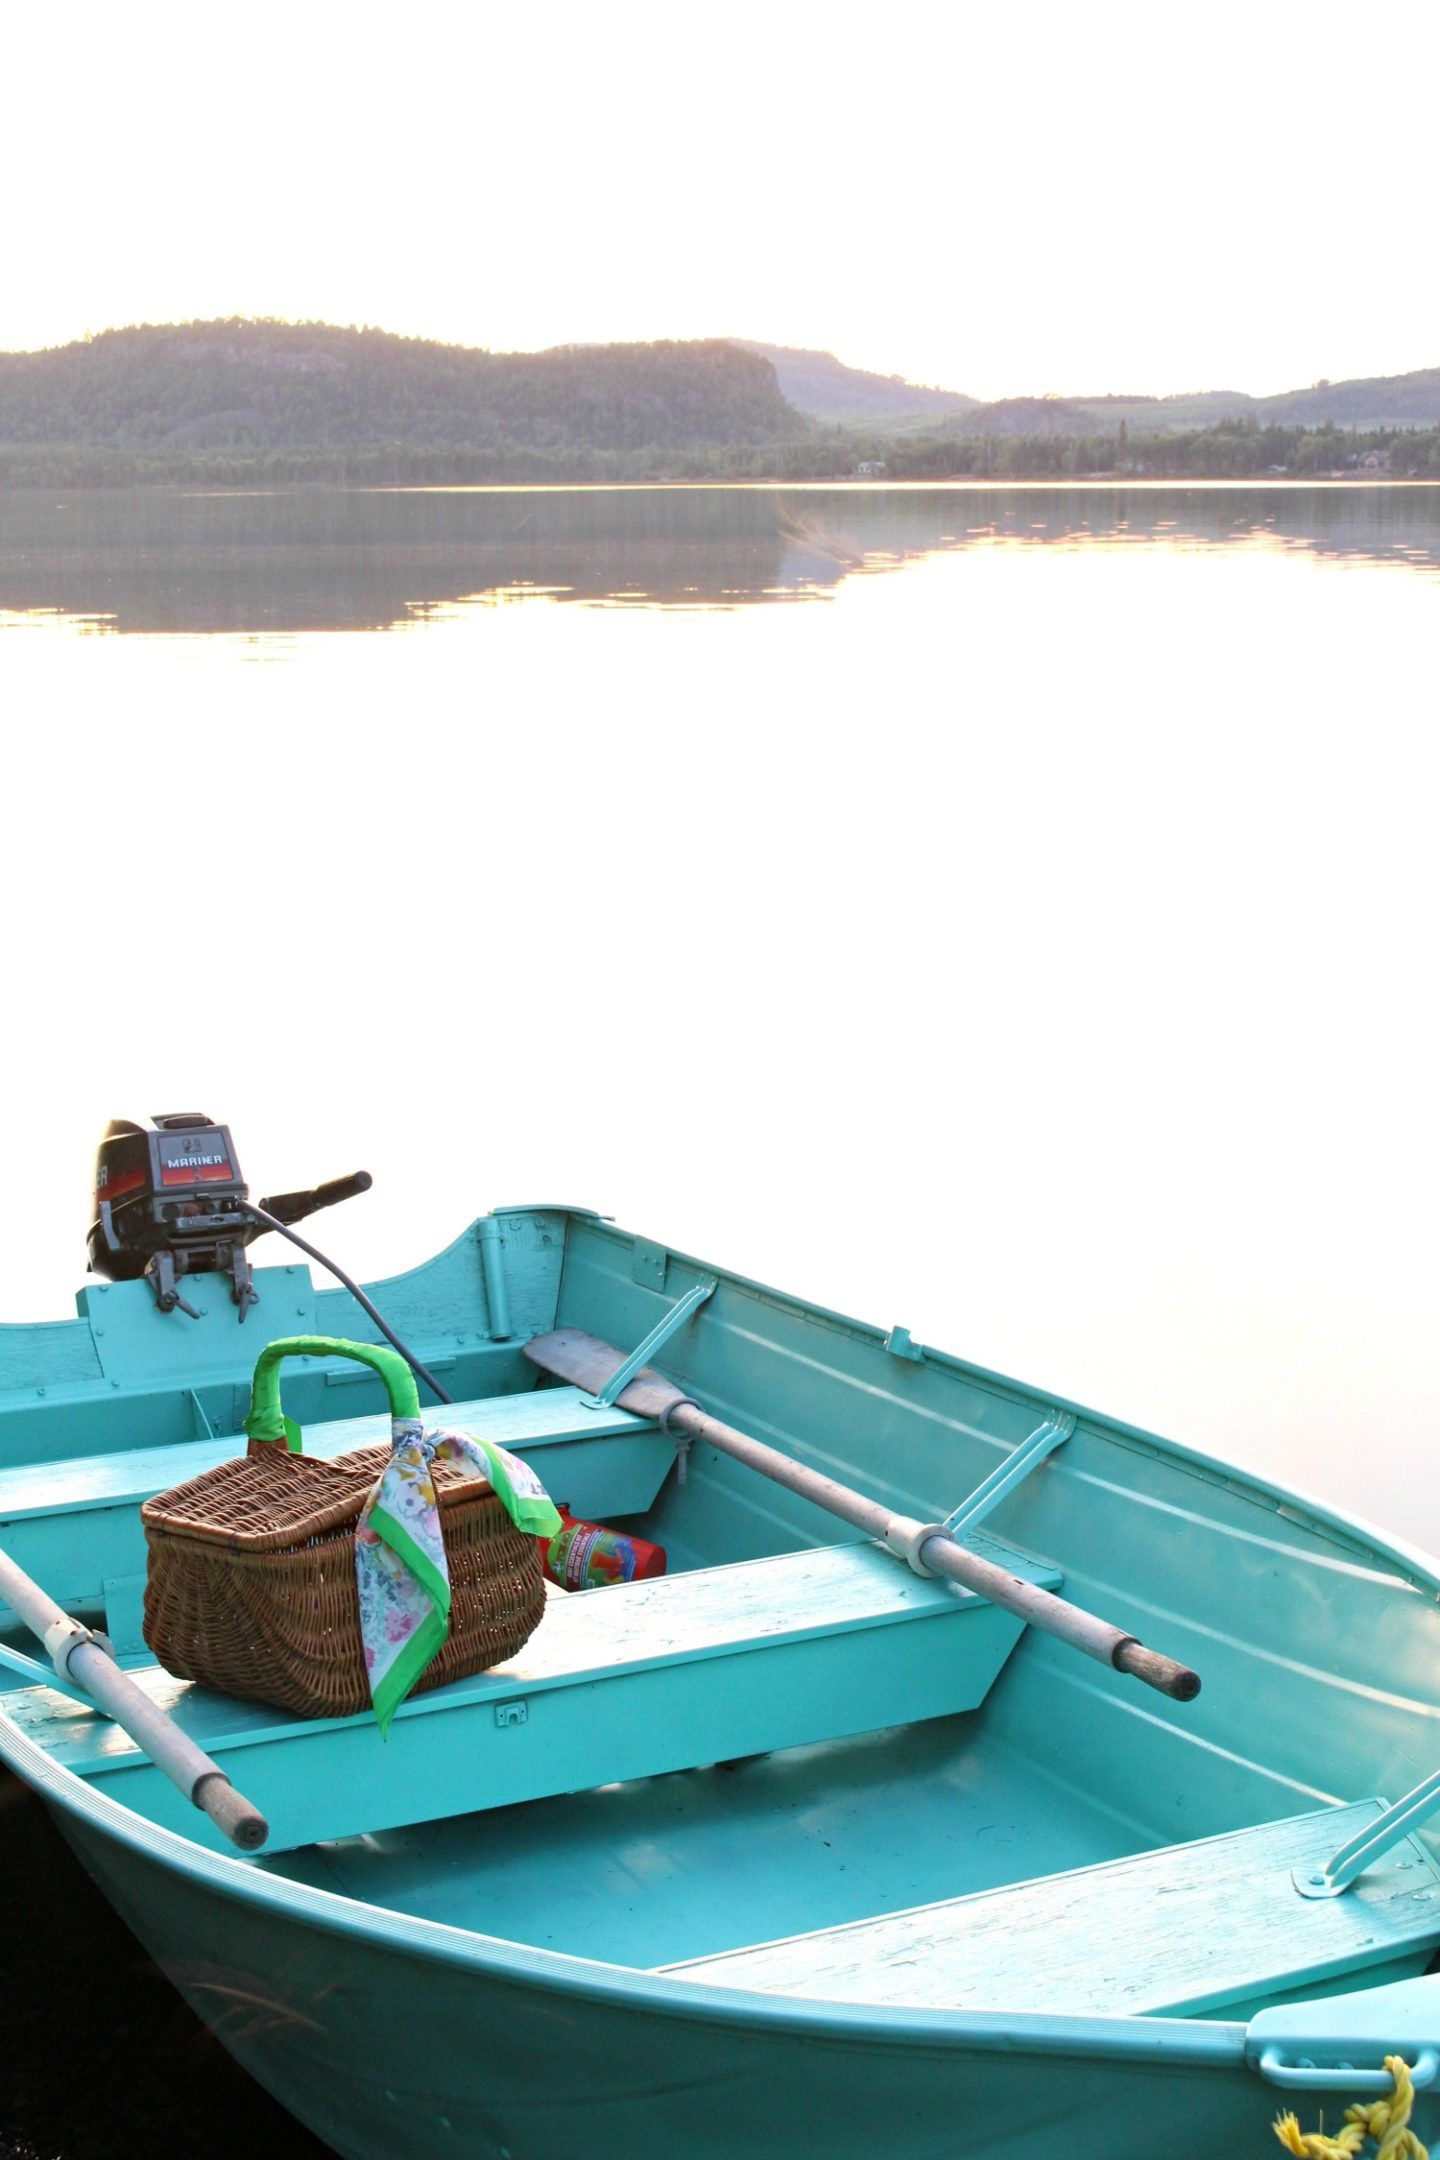 I spray painted a boat turquoise boat makeover sponsored